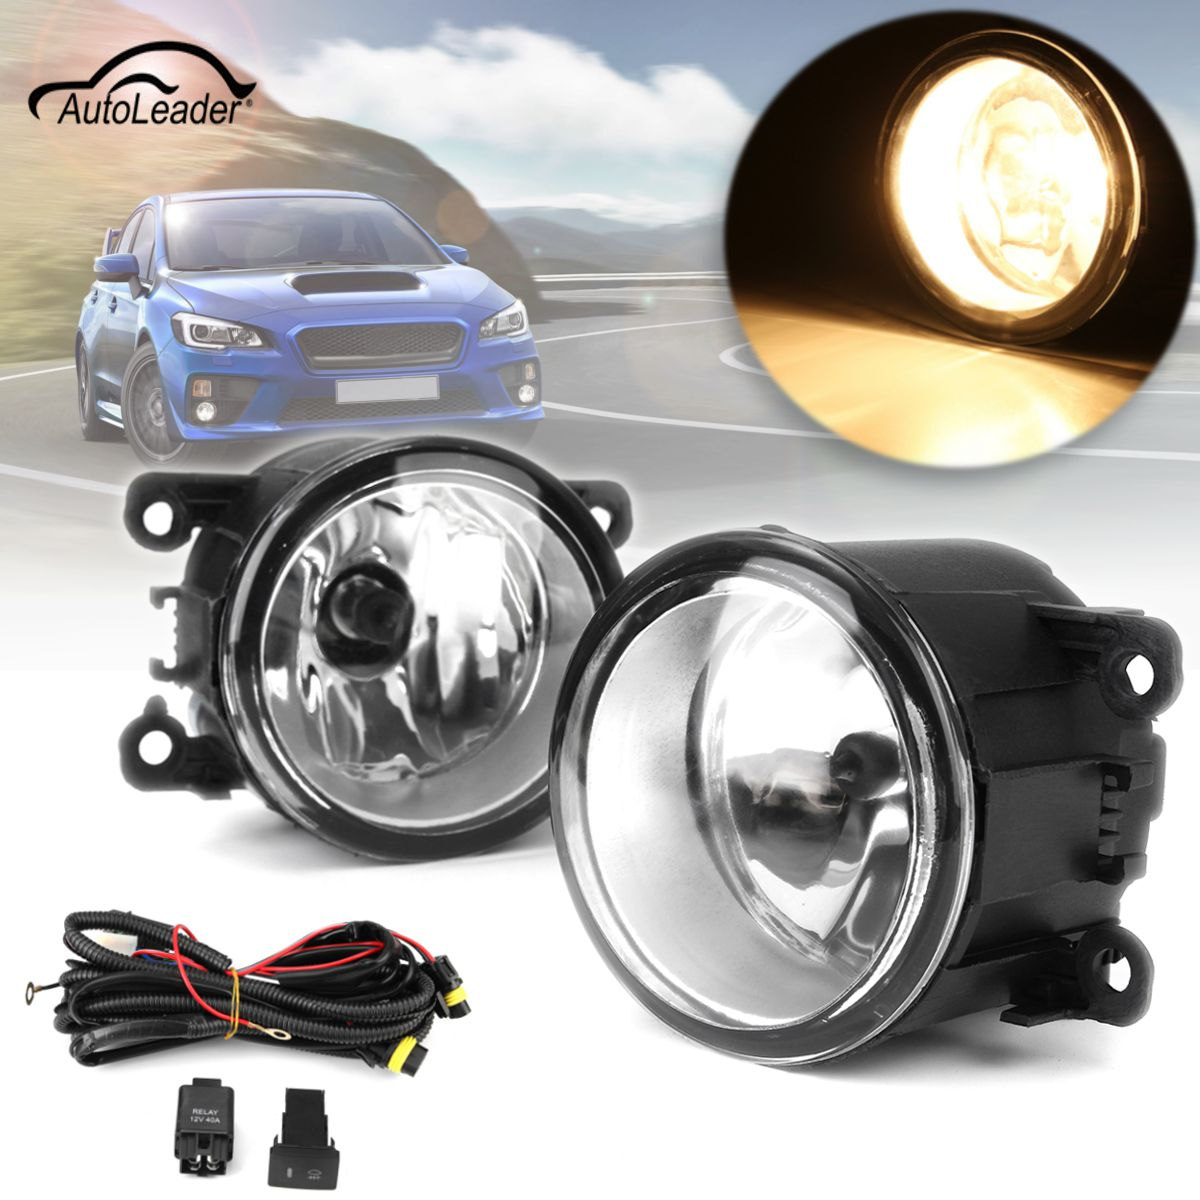 For Subaru Impreza/WRX/WRX STI/XV 1 Pair H11 Car Front Fog Light Clear Lens With Wiring Kit zea afs011 600tvl hd cctv surveillance camera w 36 ir led white pal